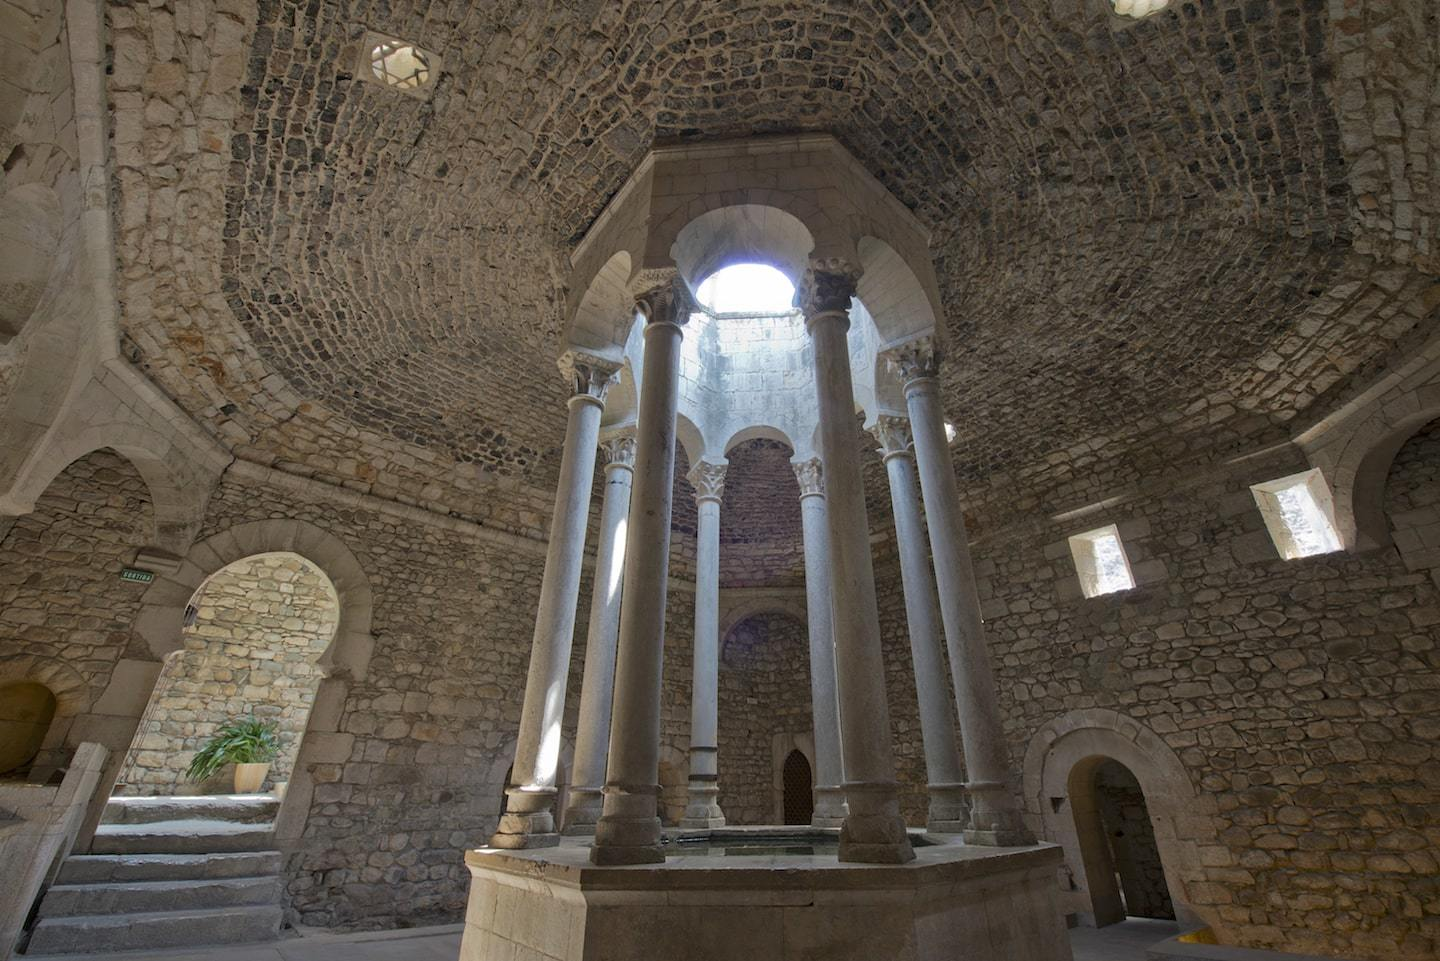 stone bath house with columns and light shining through